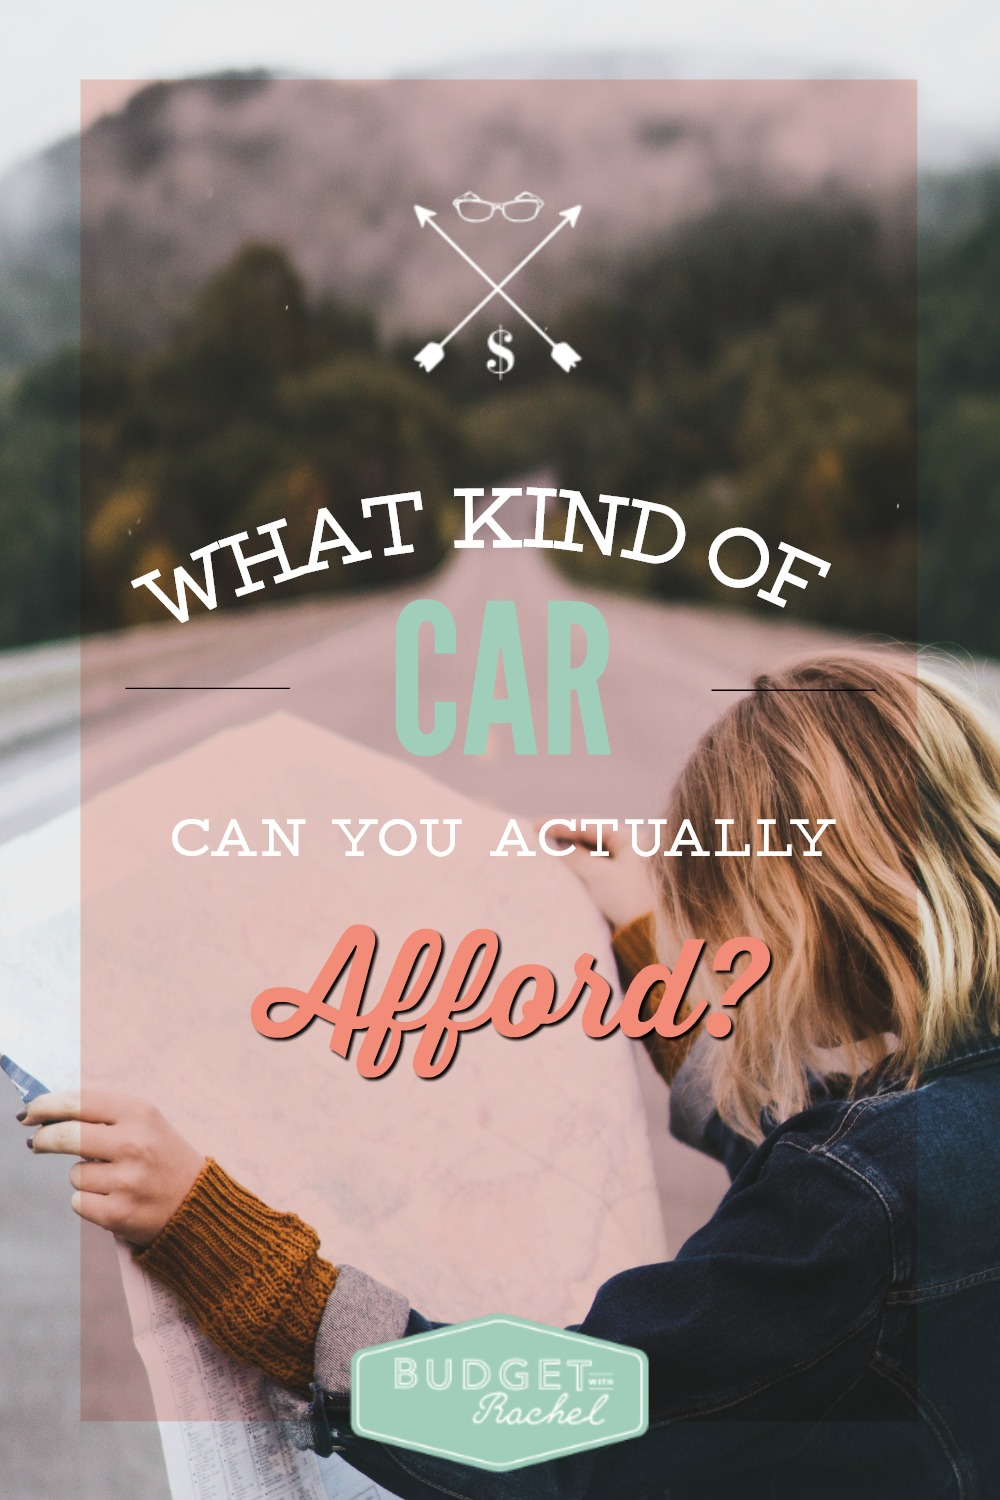 What Kind of Car Can You Actually Afford? I am so guilty of buying more car than I can afford. This has been so helpful in explaining why I need to change how I buy cars. I could have been saving thousands!!!